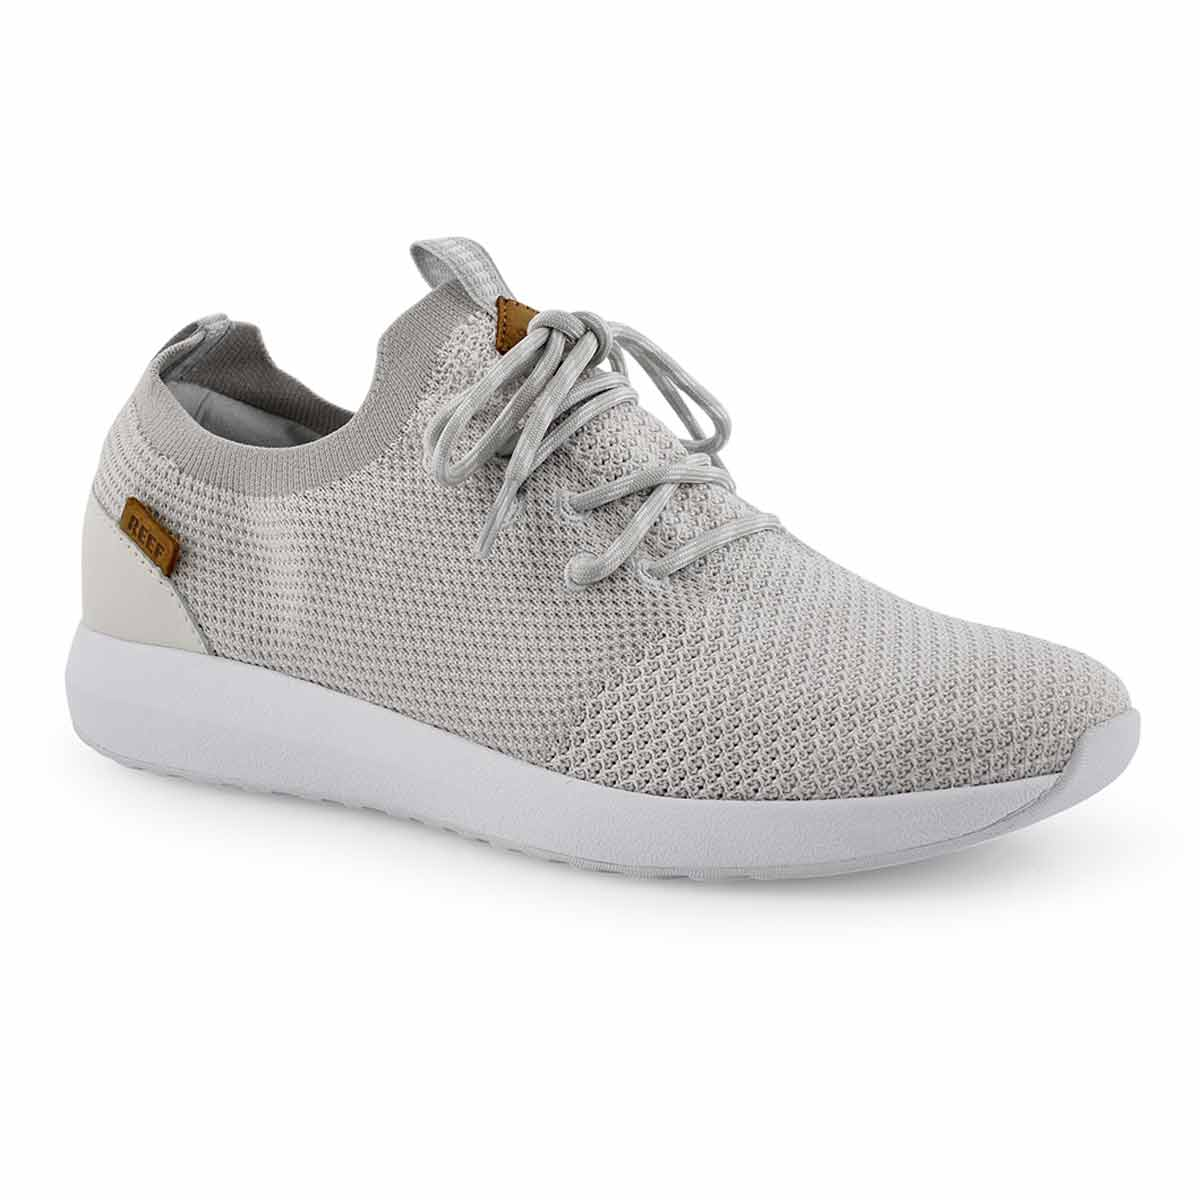 24d80fc56a3d2 Reef Men's REEF CRUISER KNIT casual sneakers | Softmoc.com